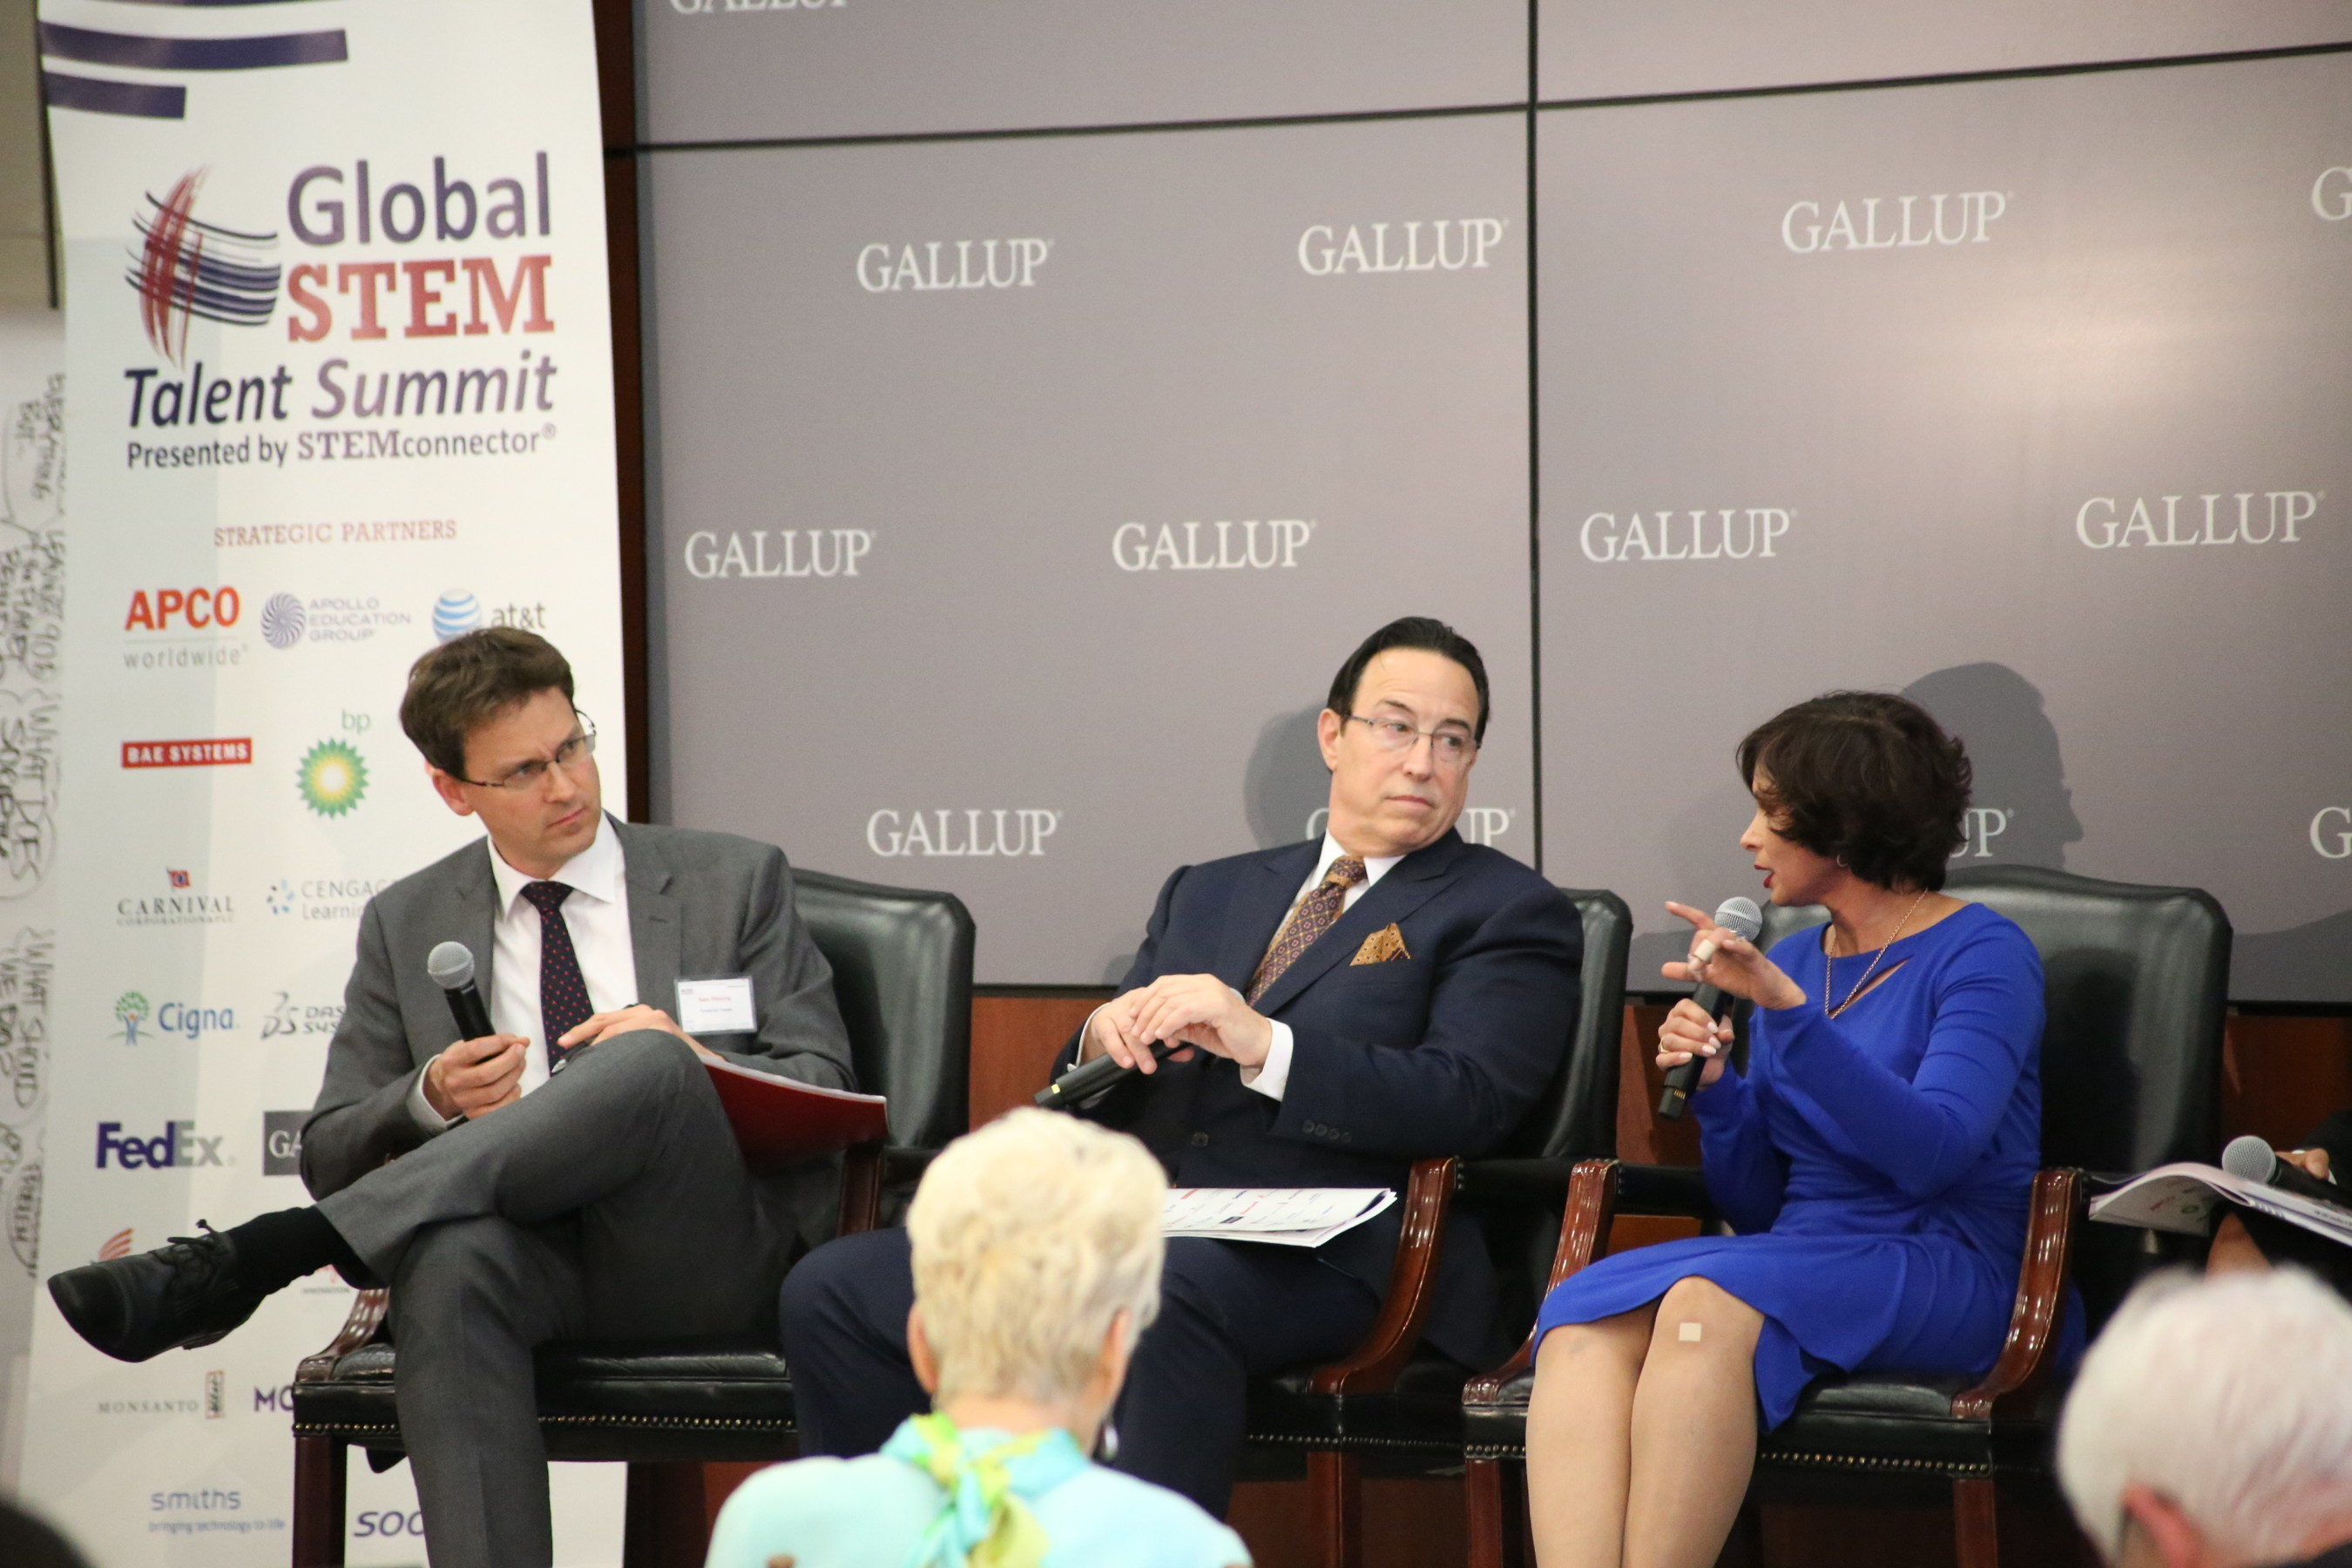 Financial Times Economics Editor, Sam Fleming (l) discusses challenges to developing skilled talent with CEO of Healthcare, Michael Norris, Sodexo North America (c) and Seema Kumar, vice president of innovation, Johnson & Johnson (r) at the 2016 Global STEM Talent Summit in Washington D.C. April 28, 2016.